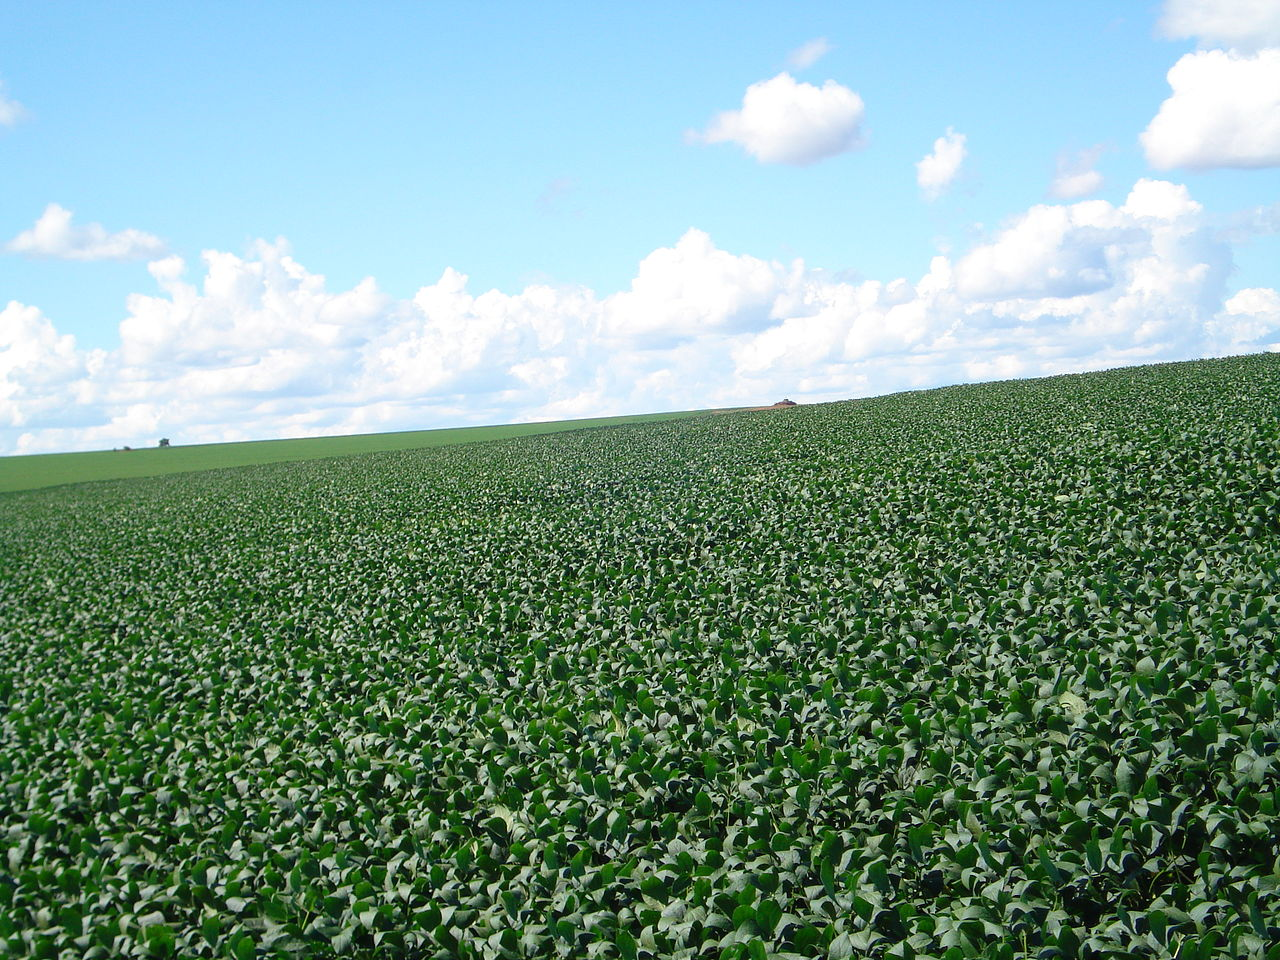 A soybean plantation with dark green leaves as far as the eye can see. The sky is blue with some clouds.